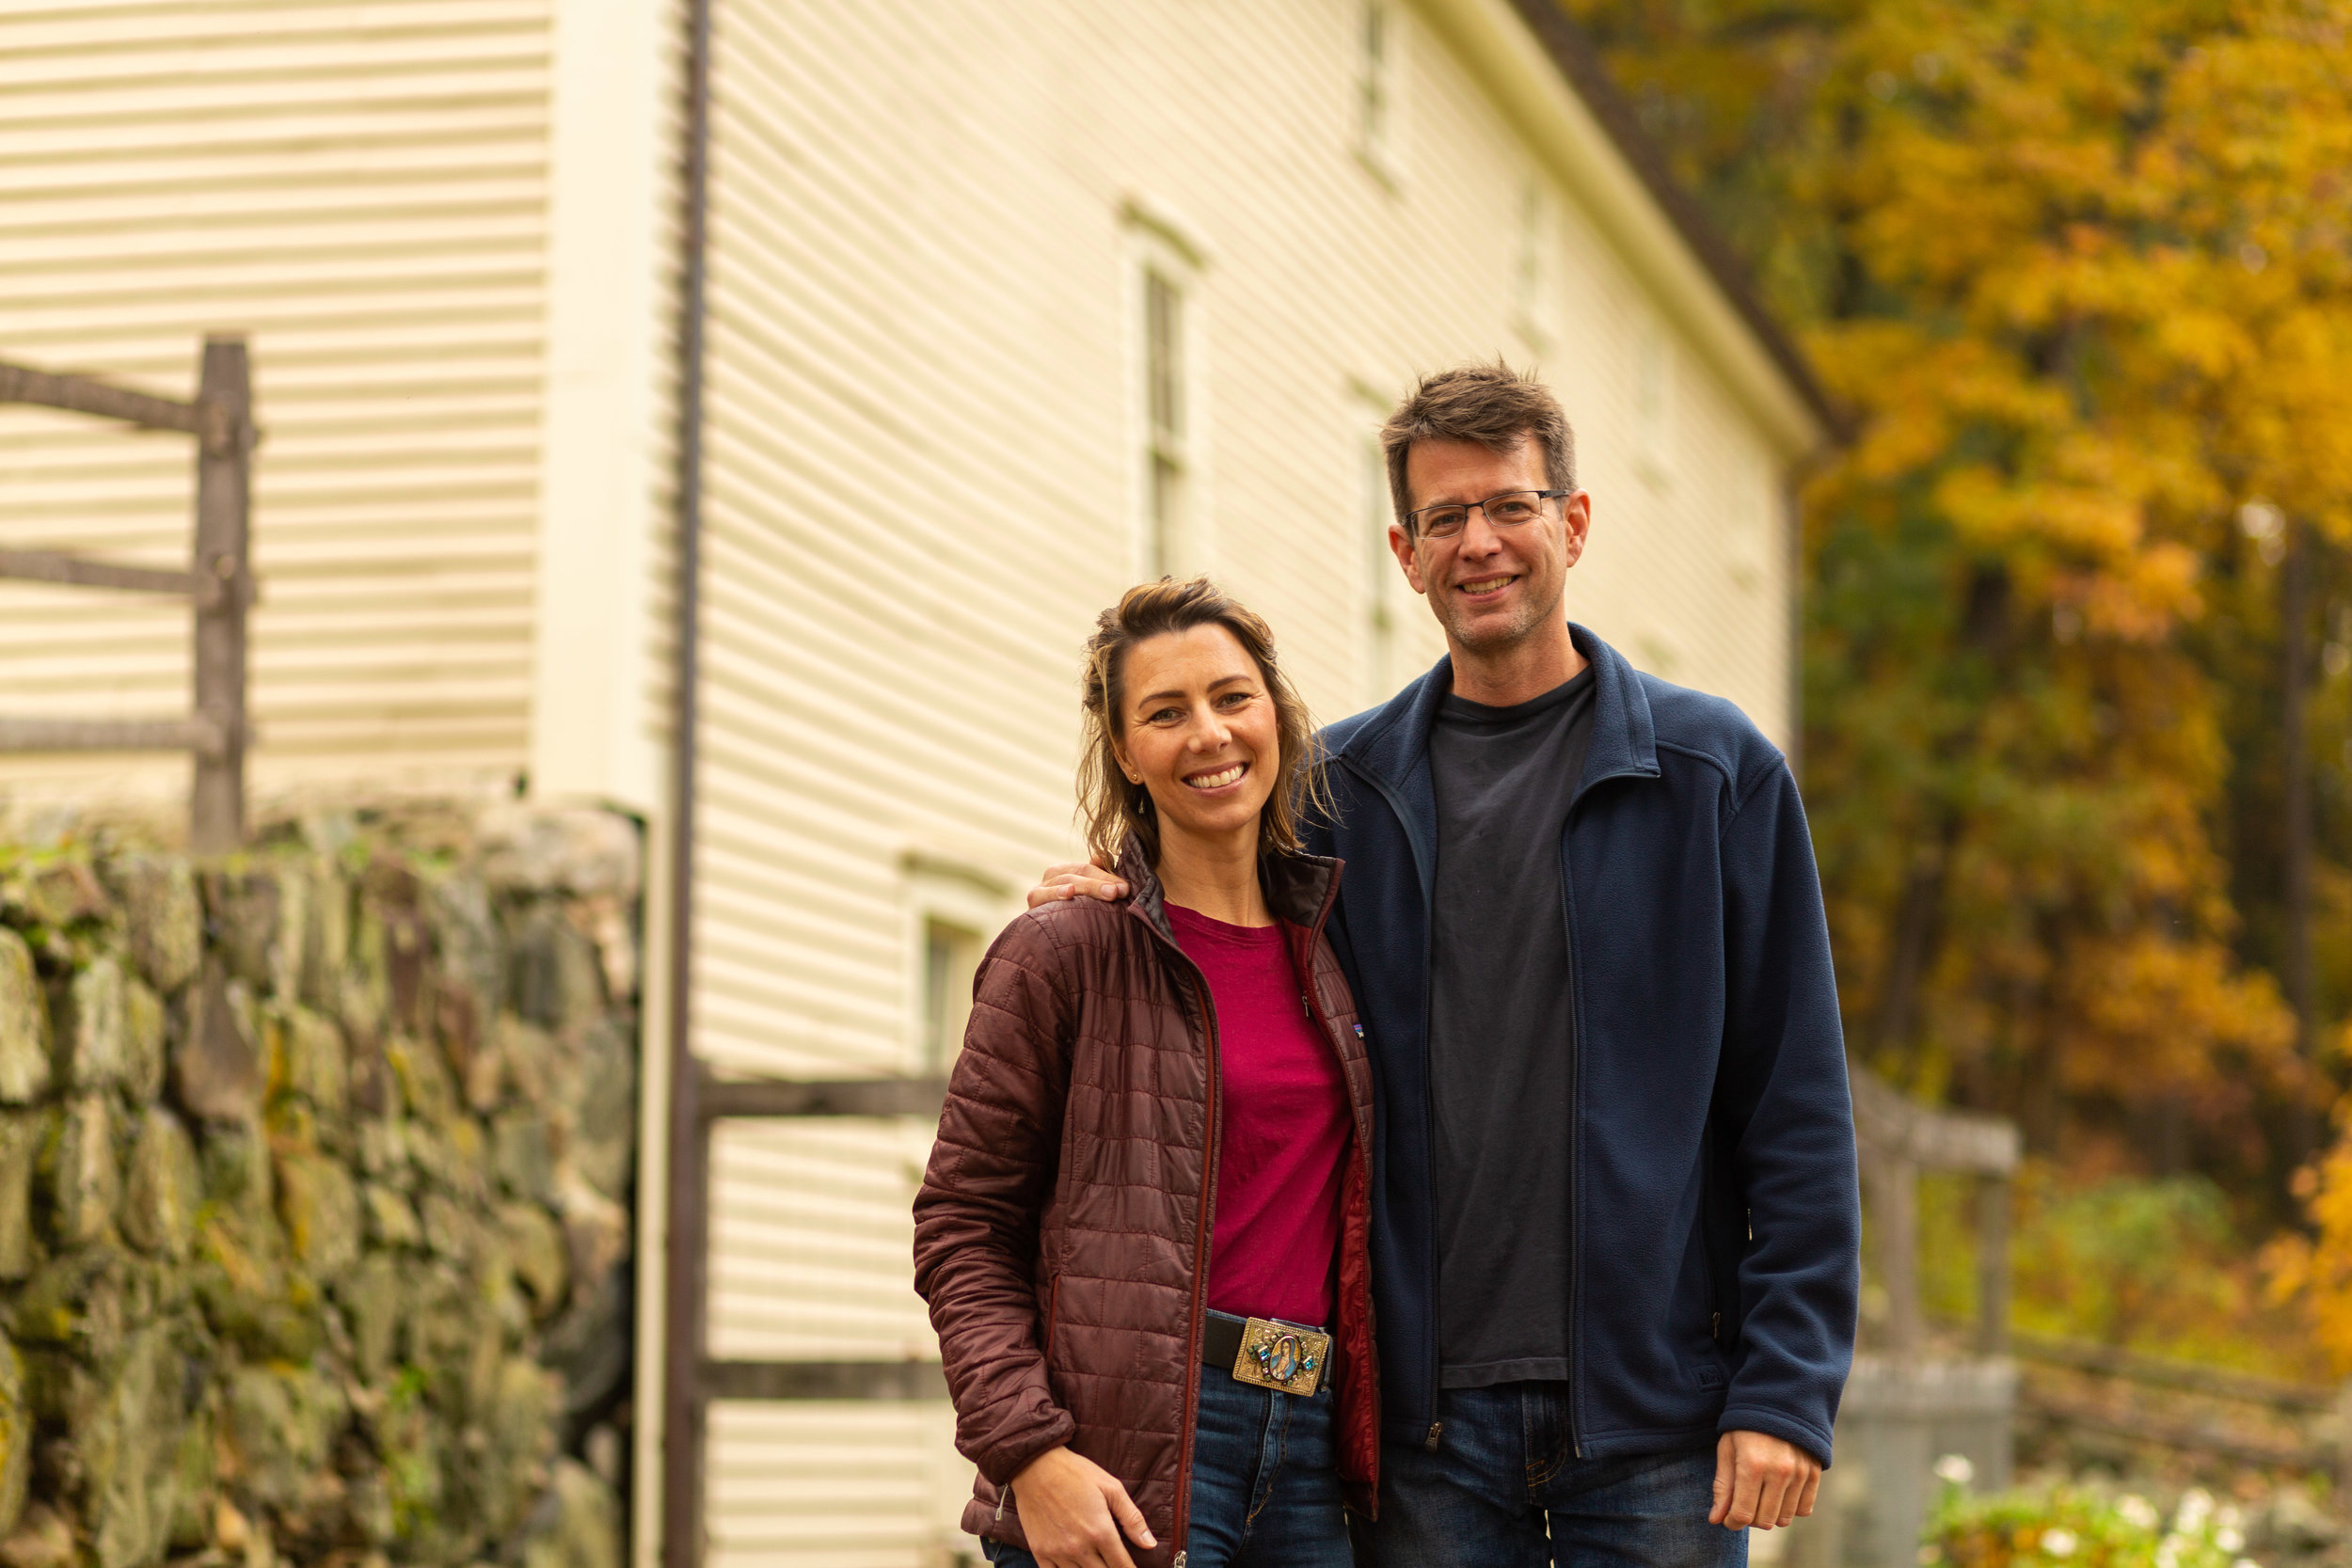 Monica and Tom Rogan, co-owners of Goodnow Farms, outside of their barn in Sudbury, MA